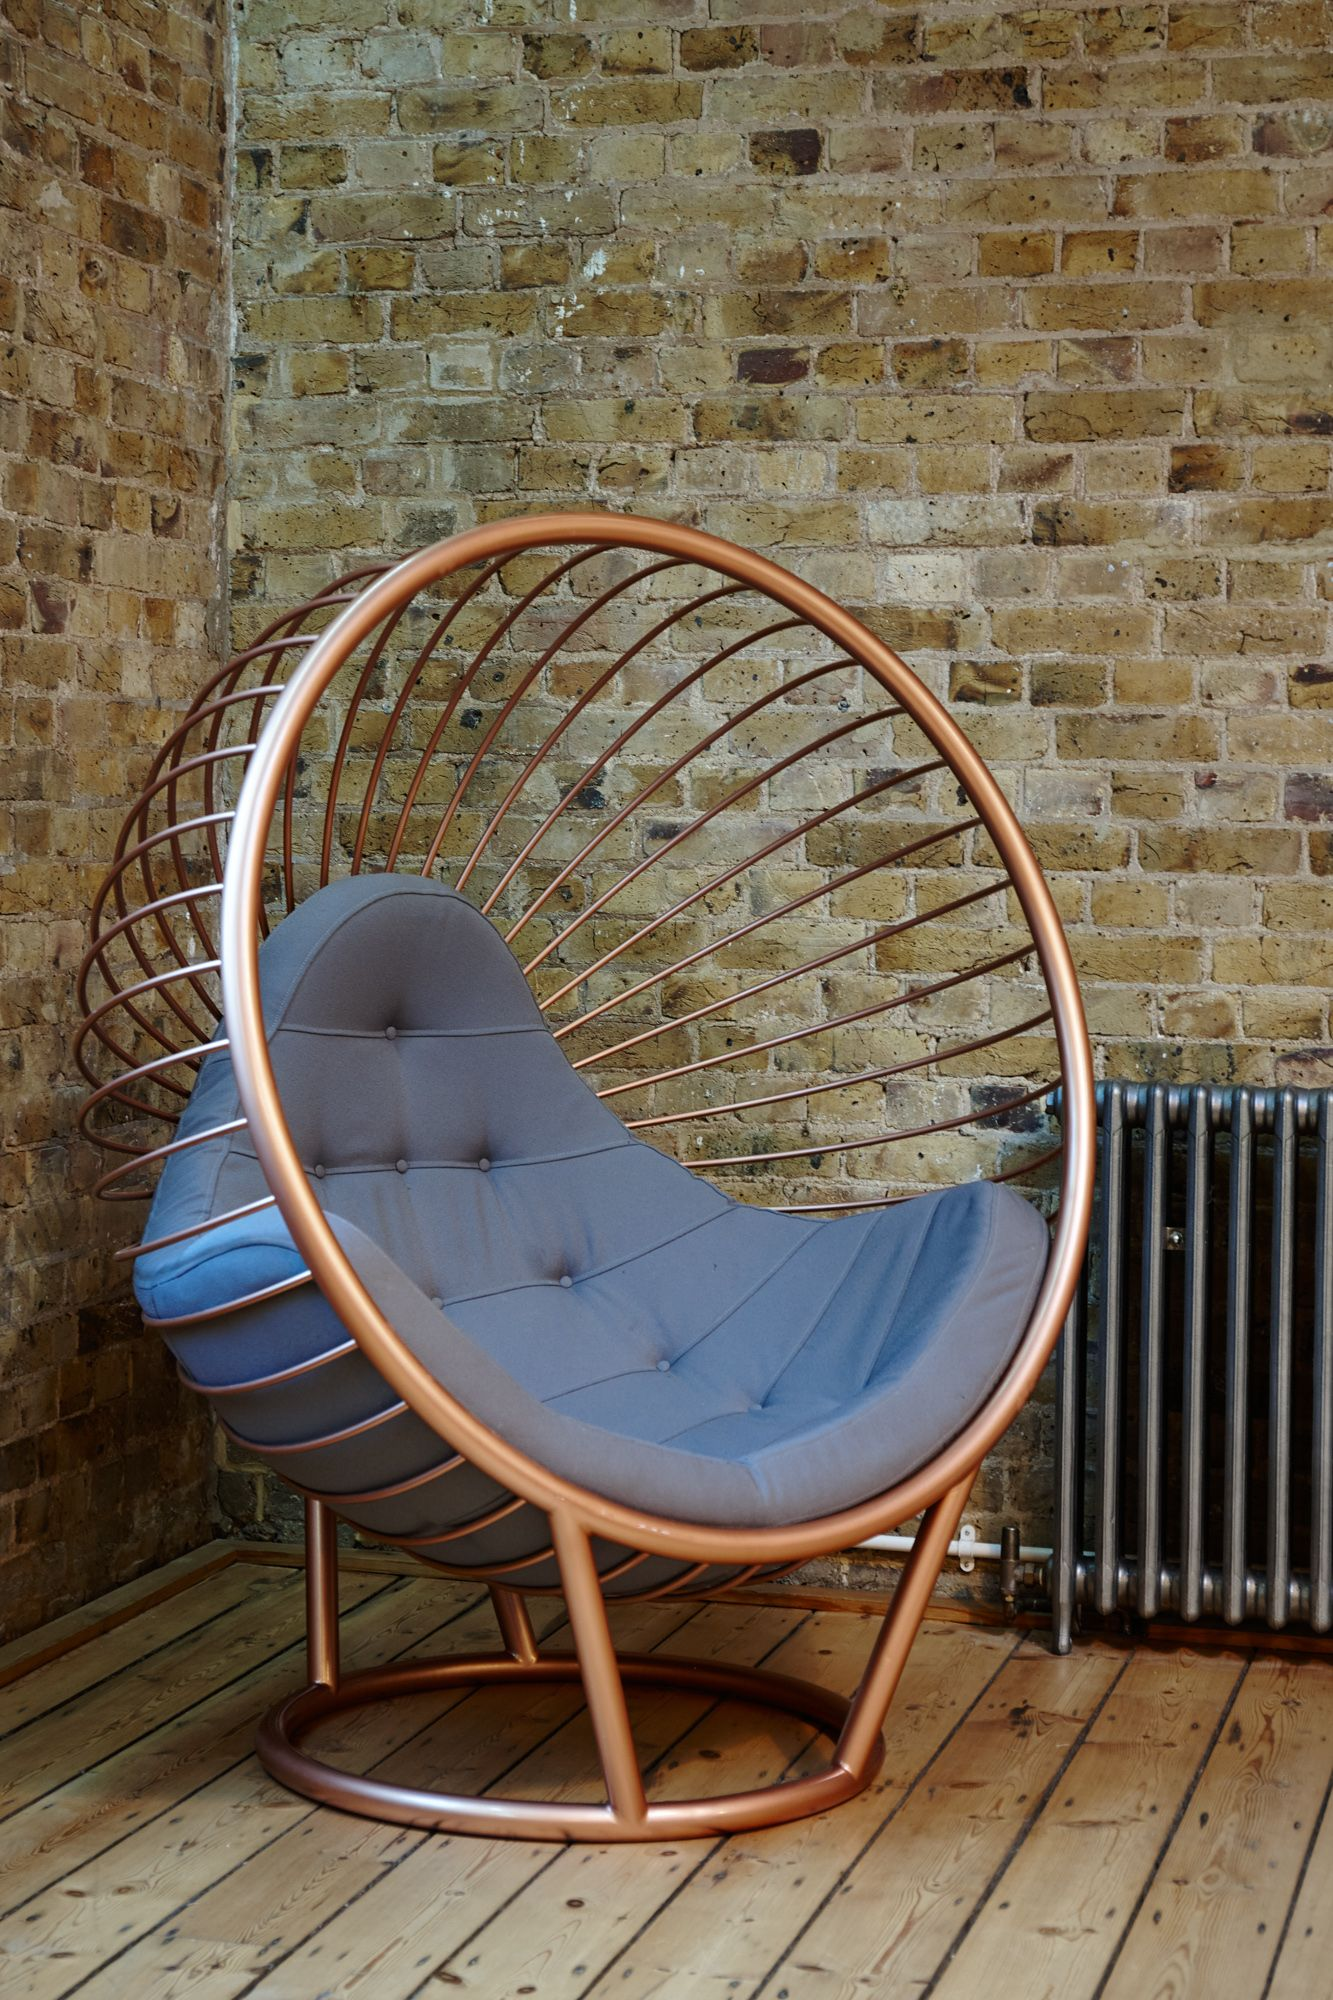 Rose Gold Stove Enamelled Wire Bubble Chair With Grey